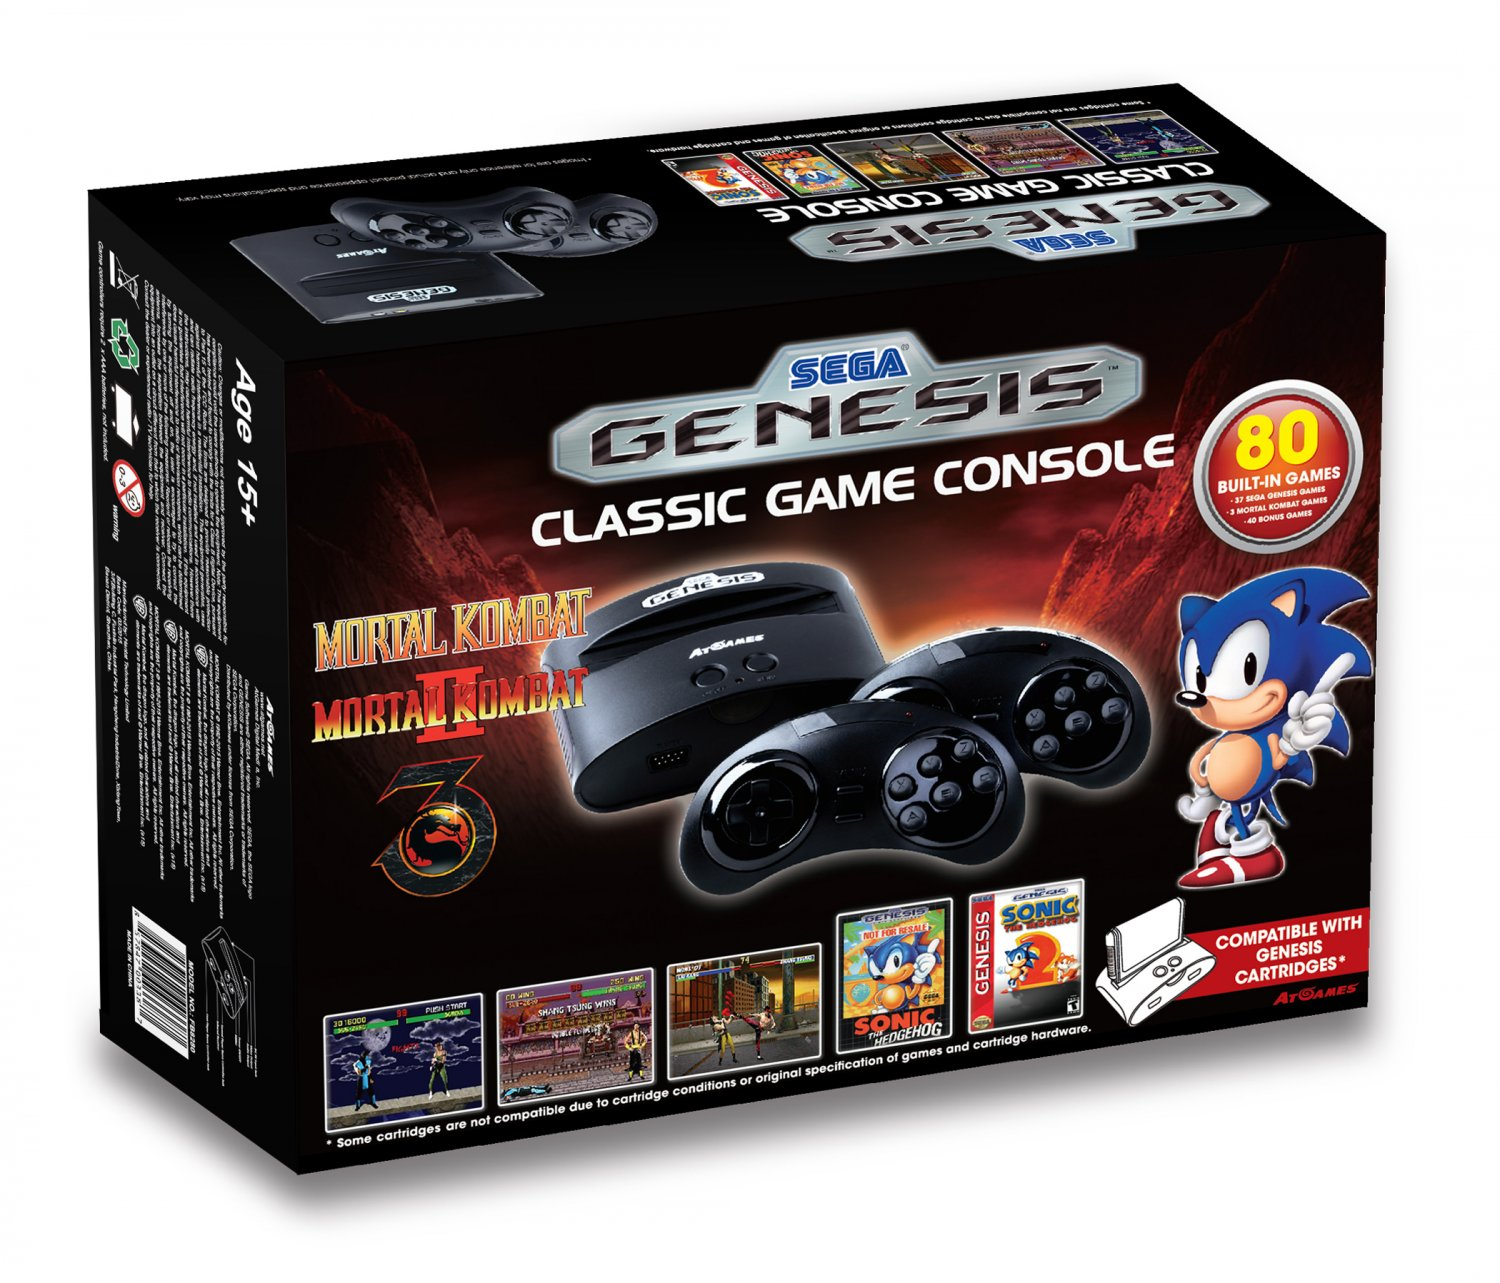 Sega Genesis Classic Game Console 2015 The Official Game List